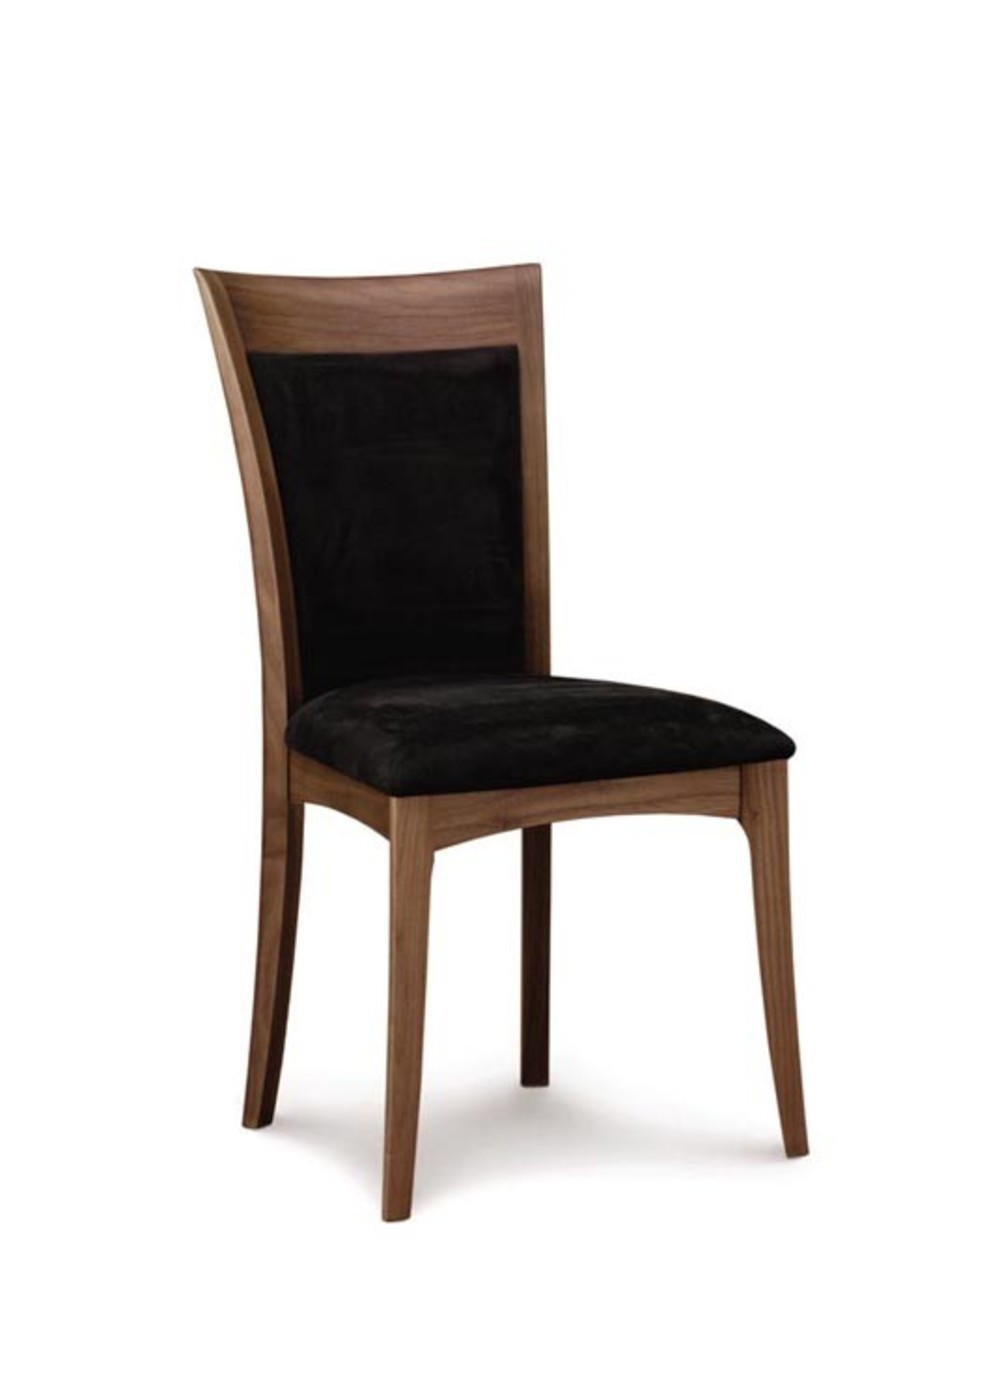 Copeland Furniture - Morgan Side Chair